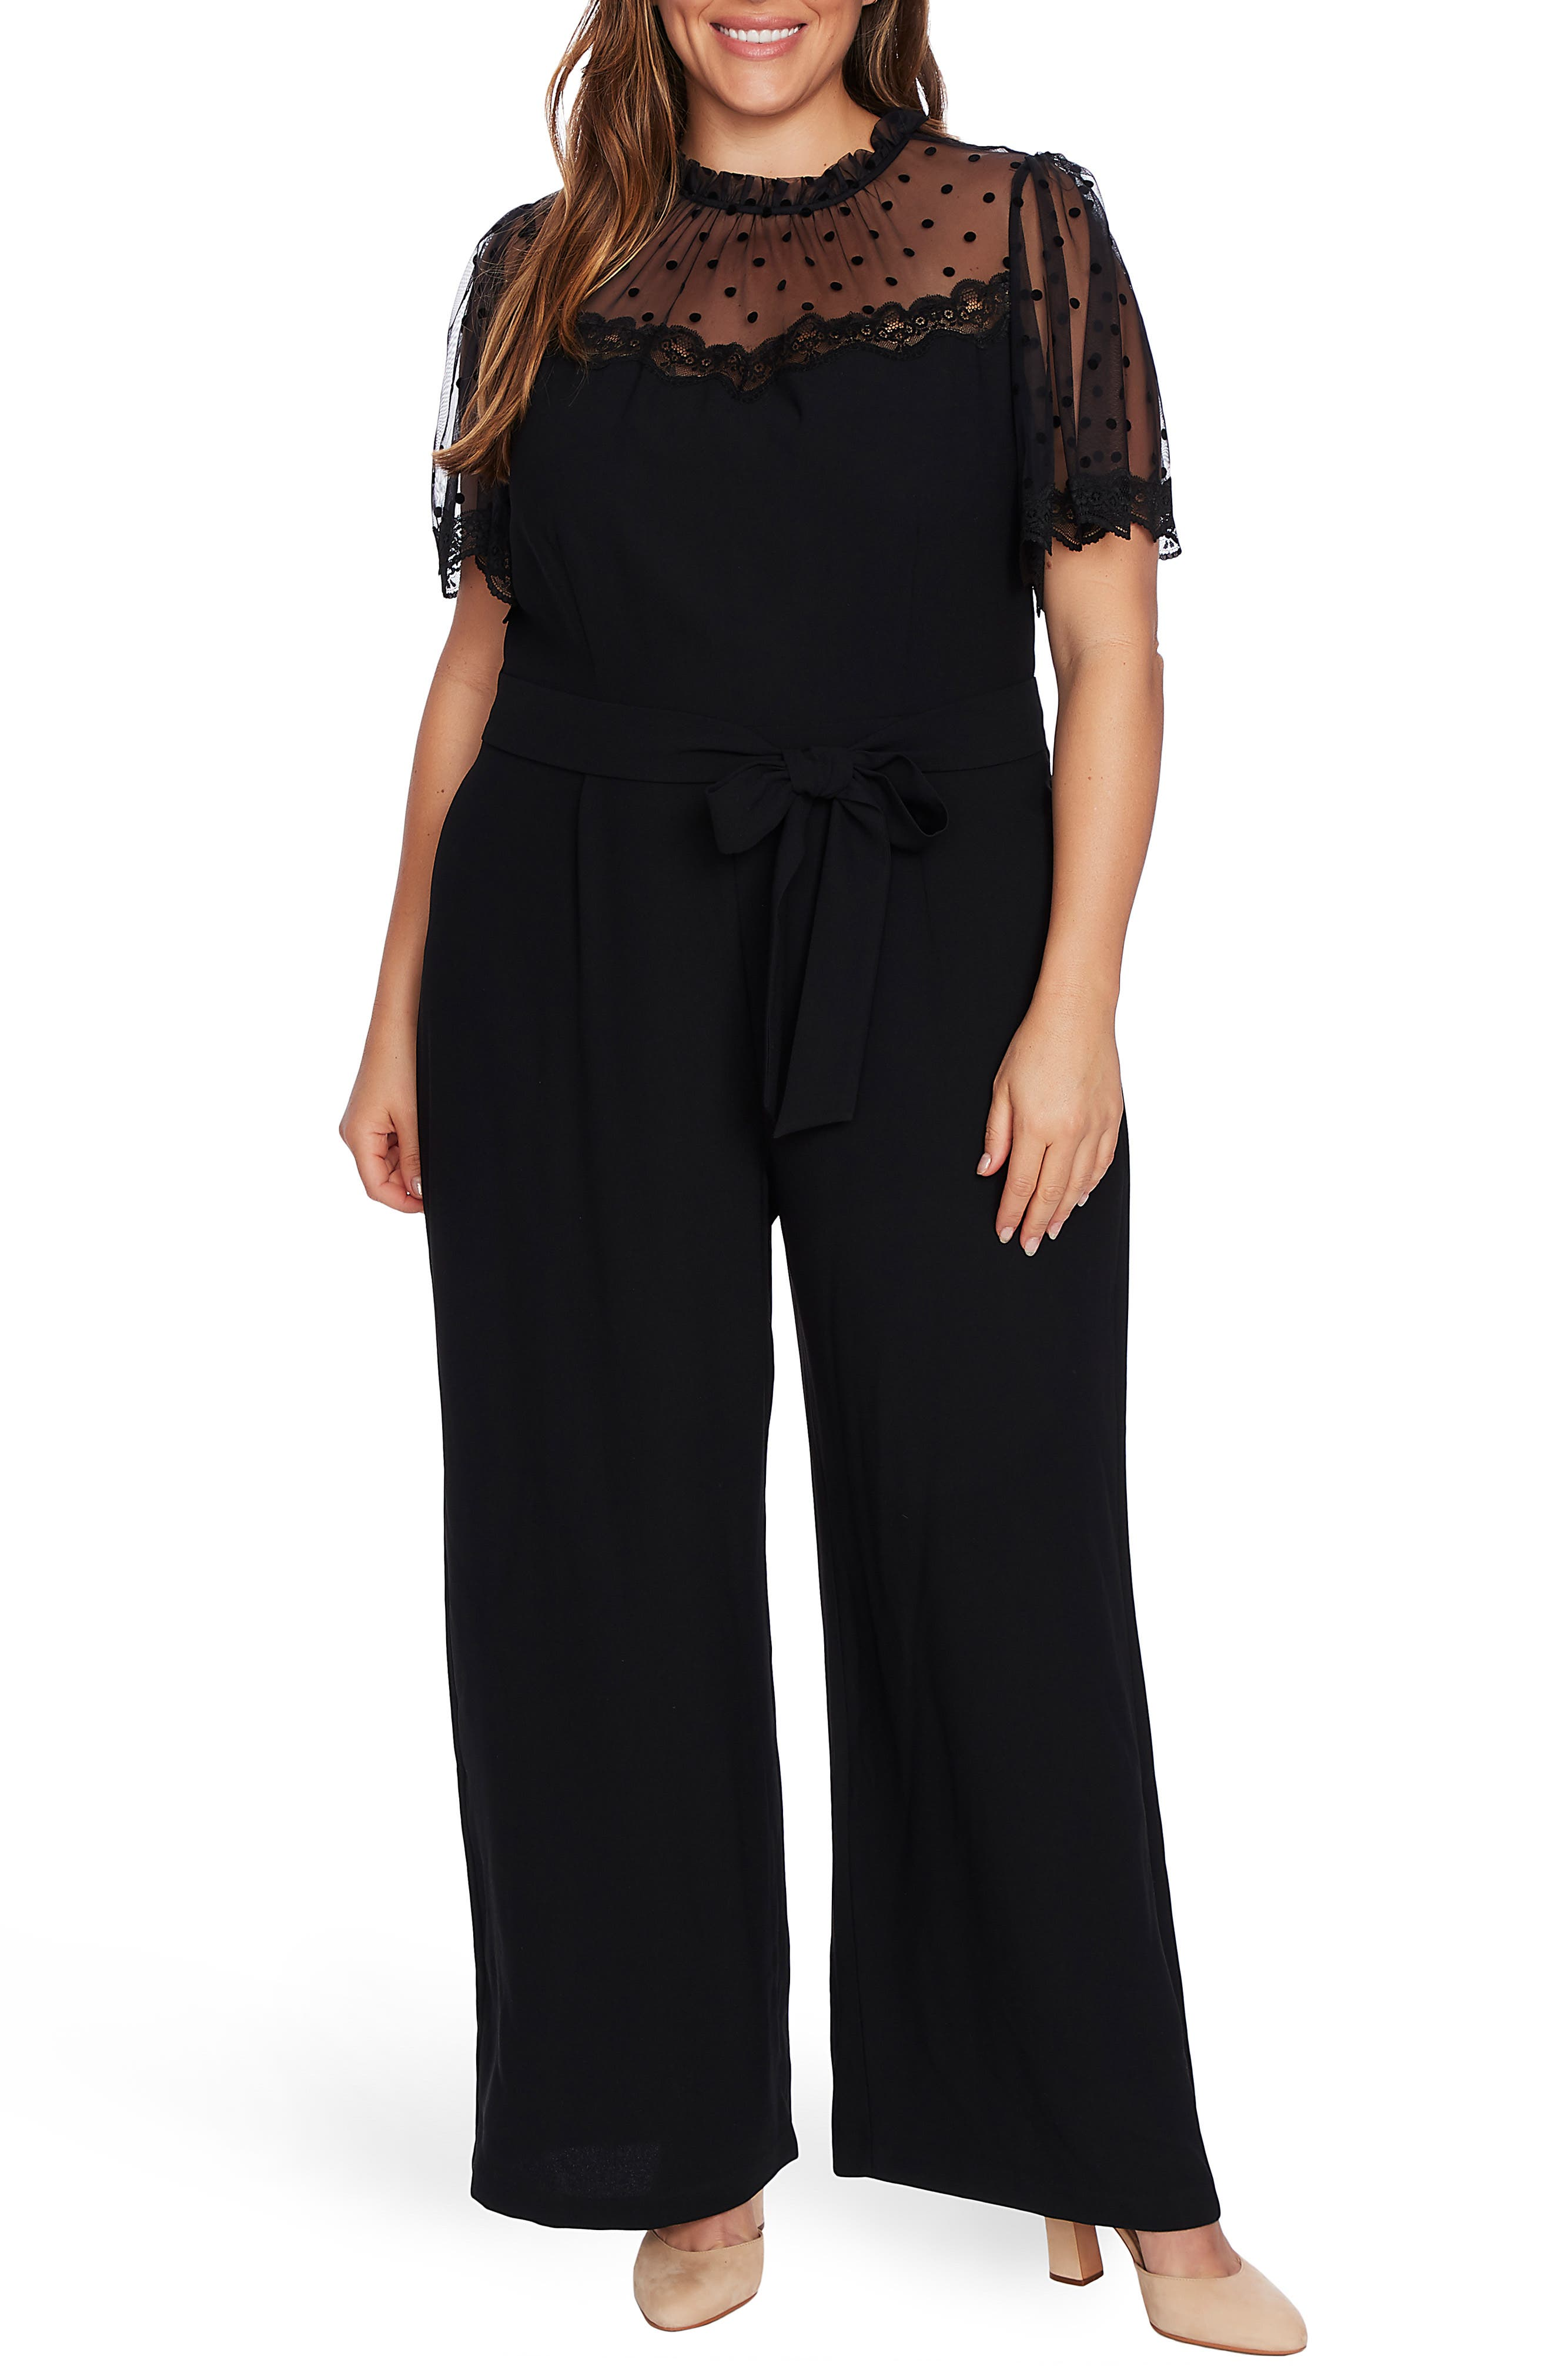 1940s Plus Size Fashion: Style Advice from 1940s to Today Plus Size Womens Cece Velvet Dot Sheer Yoke Jumpsuit $149.00 AT vintagedancer.com